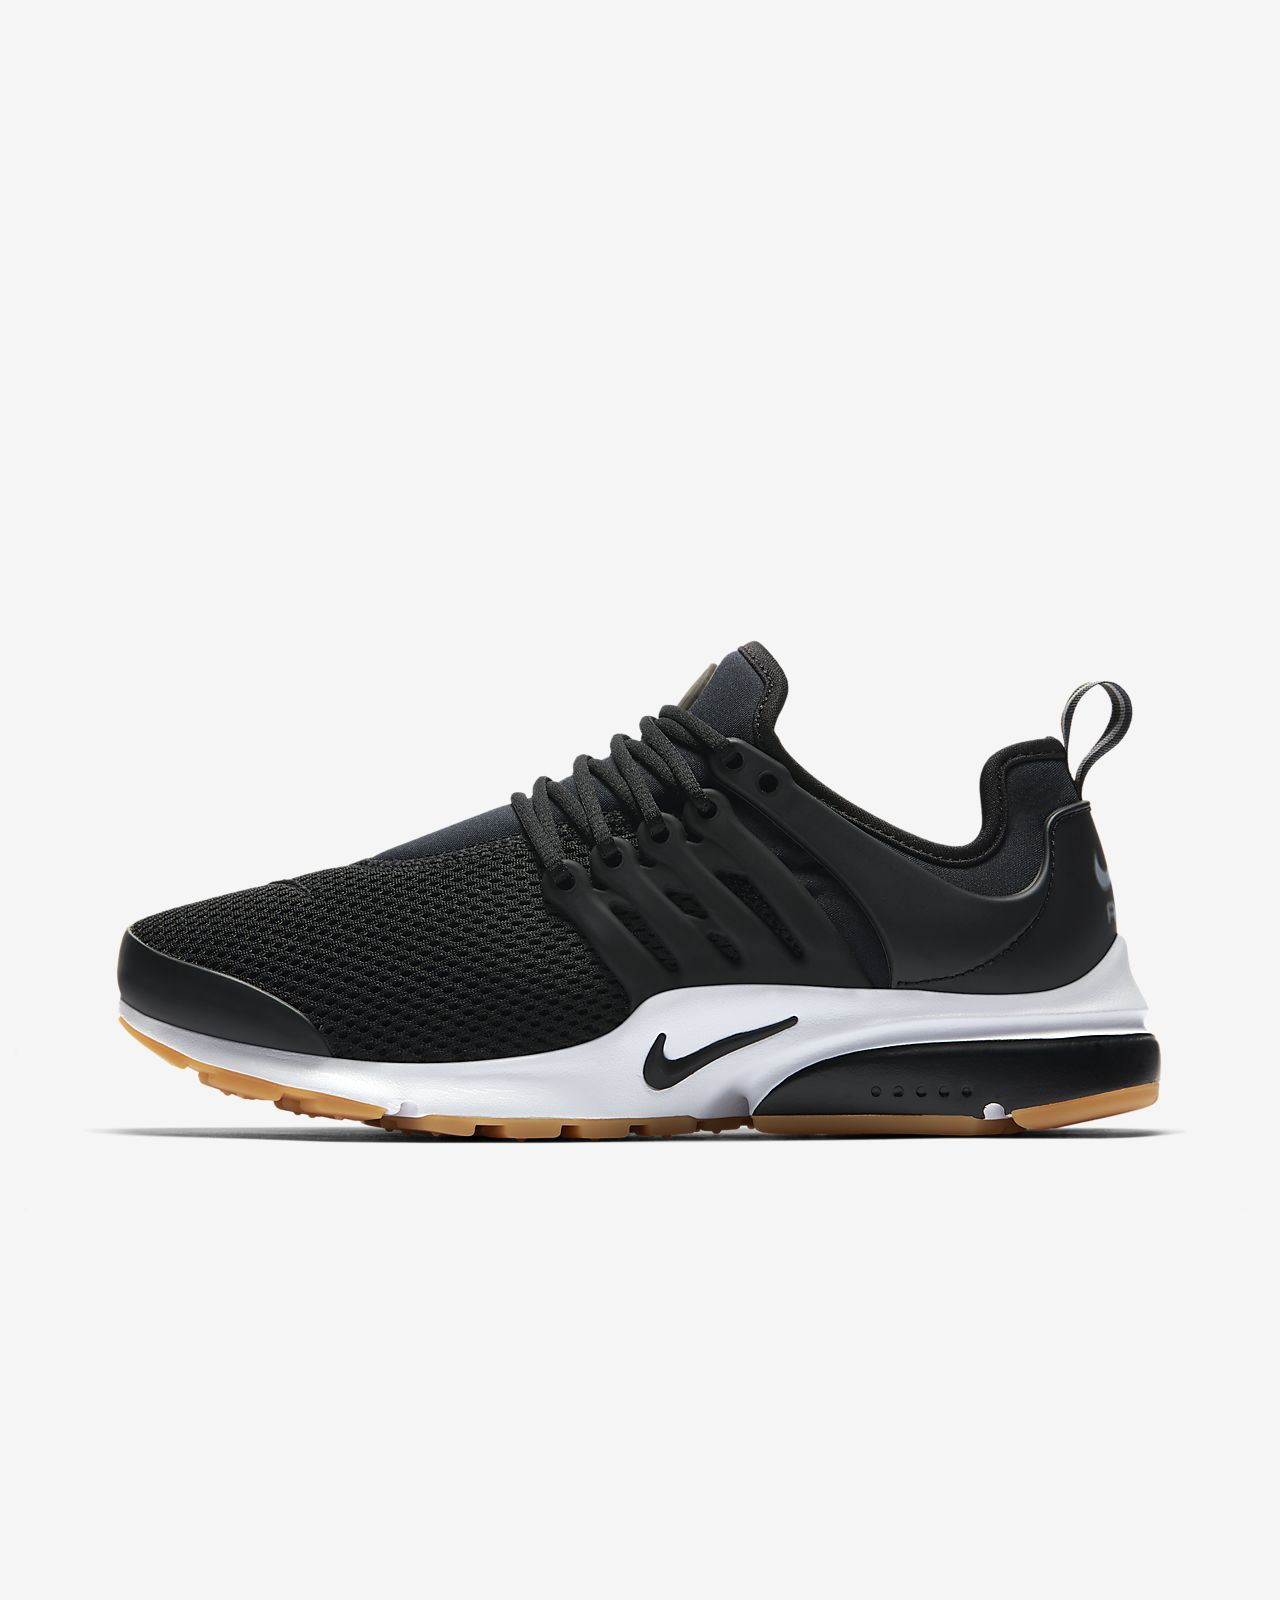 watch 194fc 9b3da ... Nike Air Presto Women s Shoe